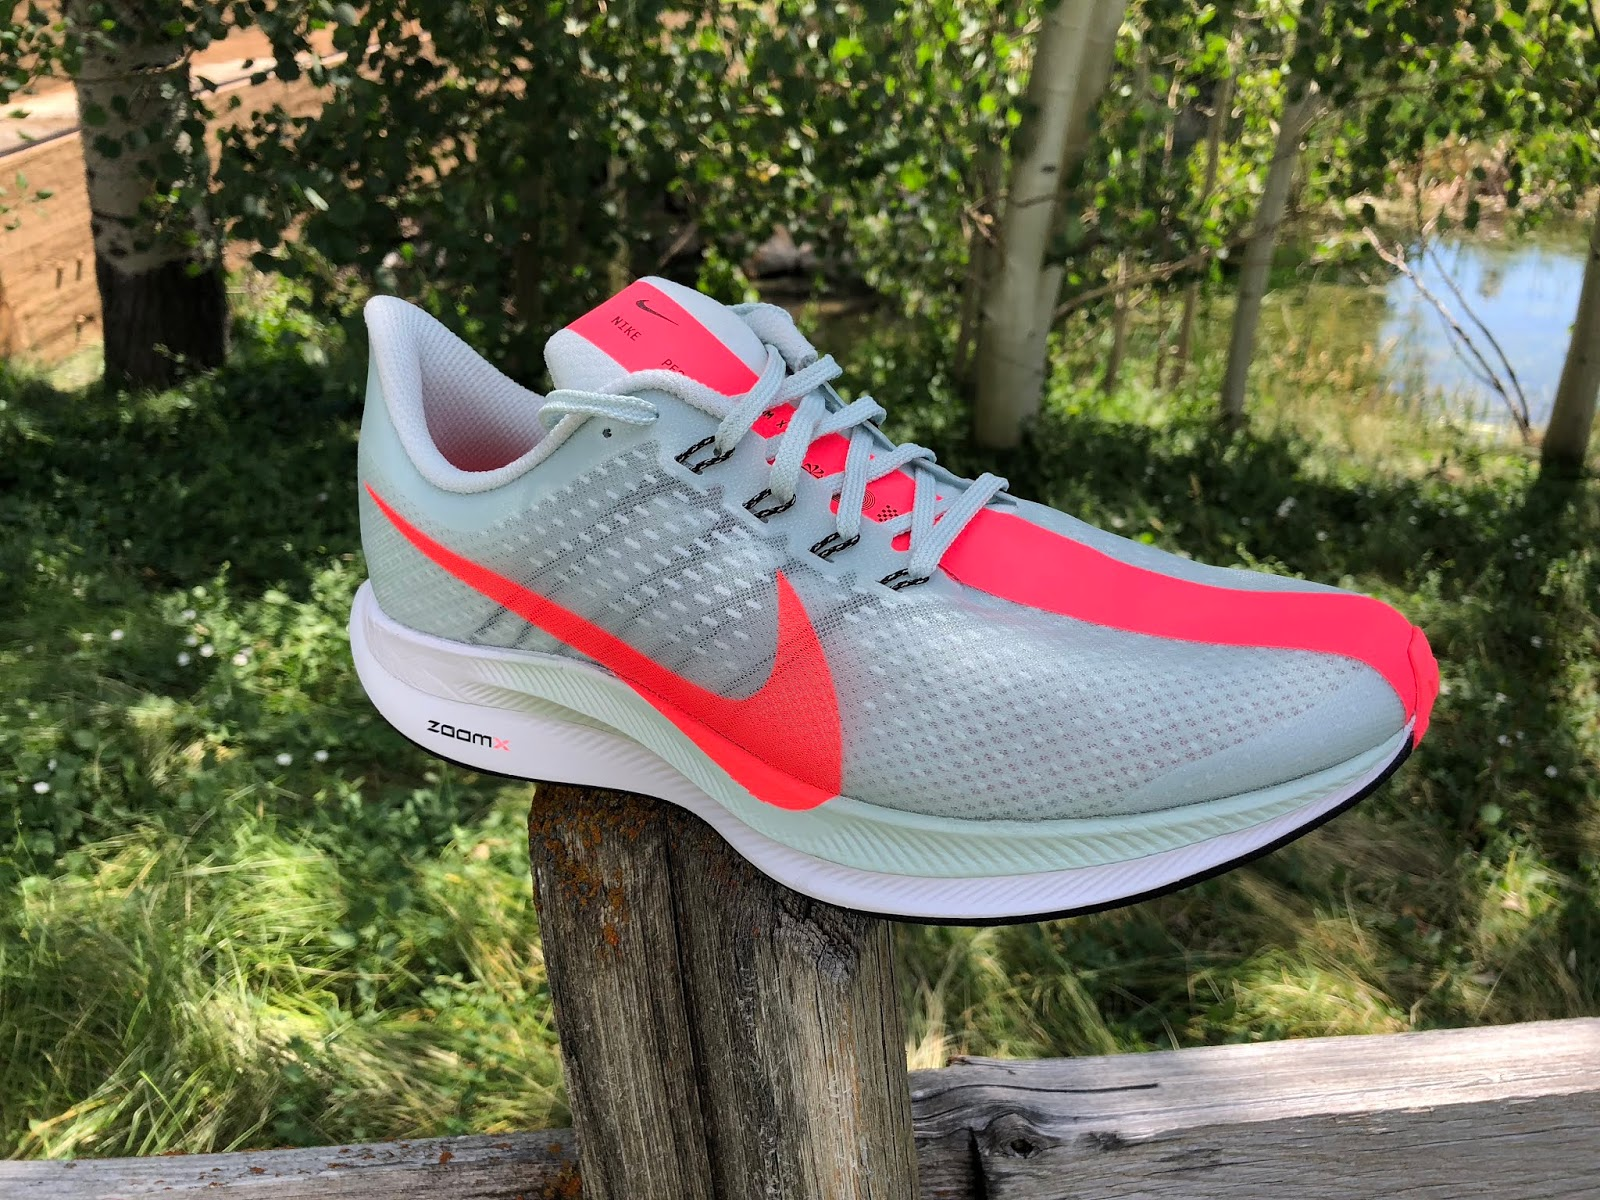 new arrivals 54efb a96ab On July 11th Nike released the Zoom Pegasus Turbo, an approximately 8 oz   227 g (men s 9), 6.9 oz  196 g (women s 8) run trainer. Nike s official  weight at ...